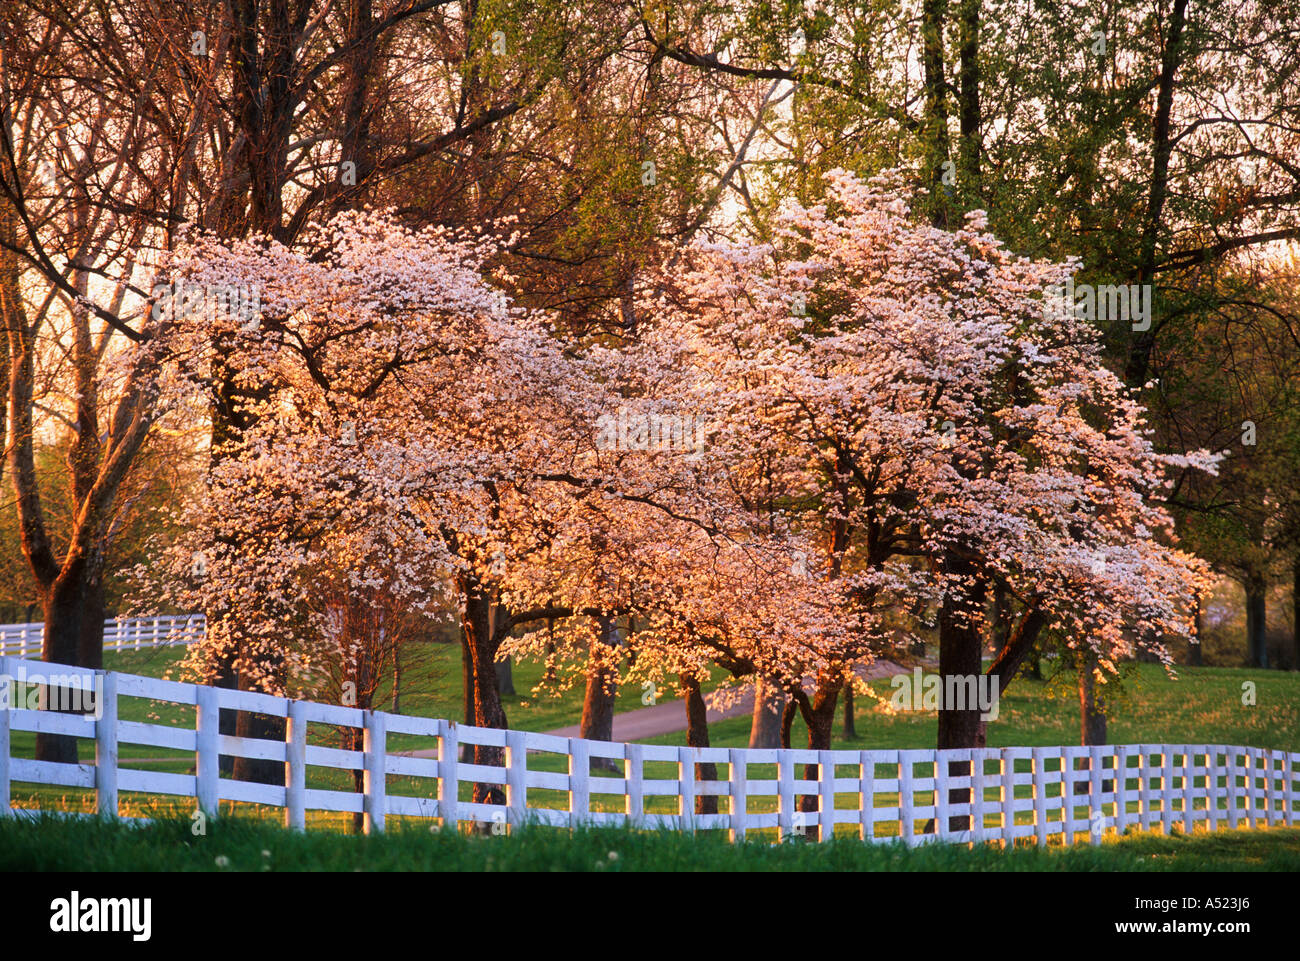 Flowering Pink Dogwood Trees And White Board Fence In The Spring